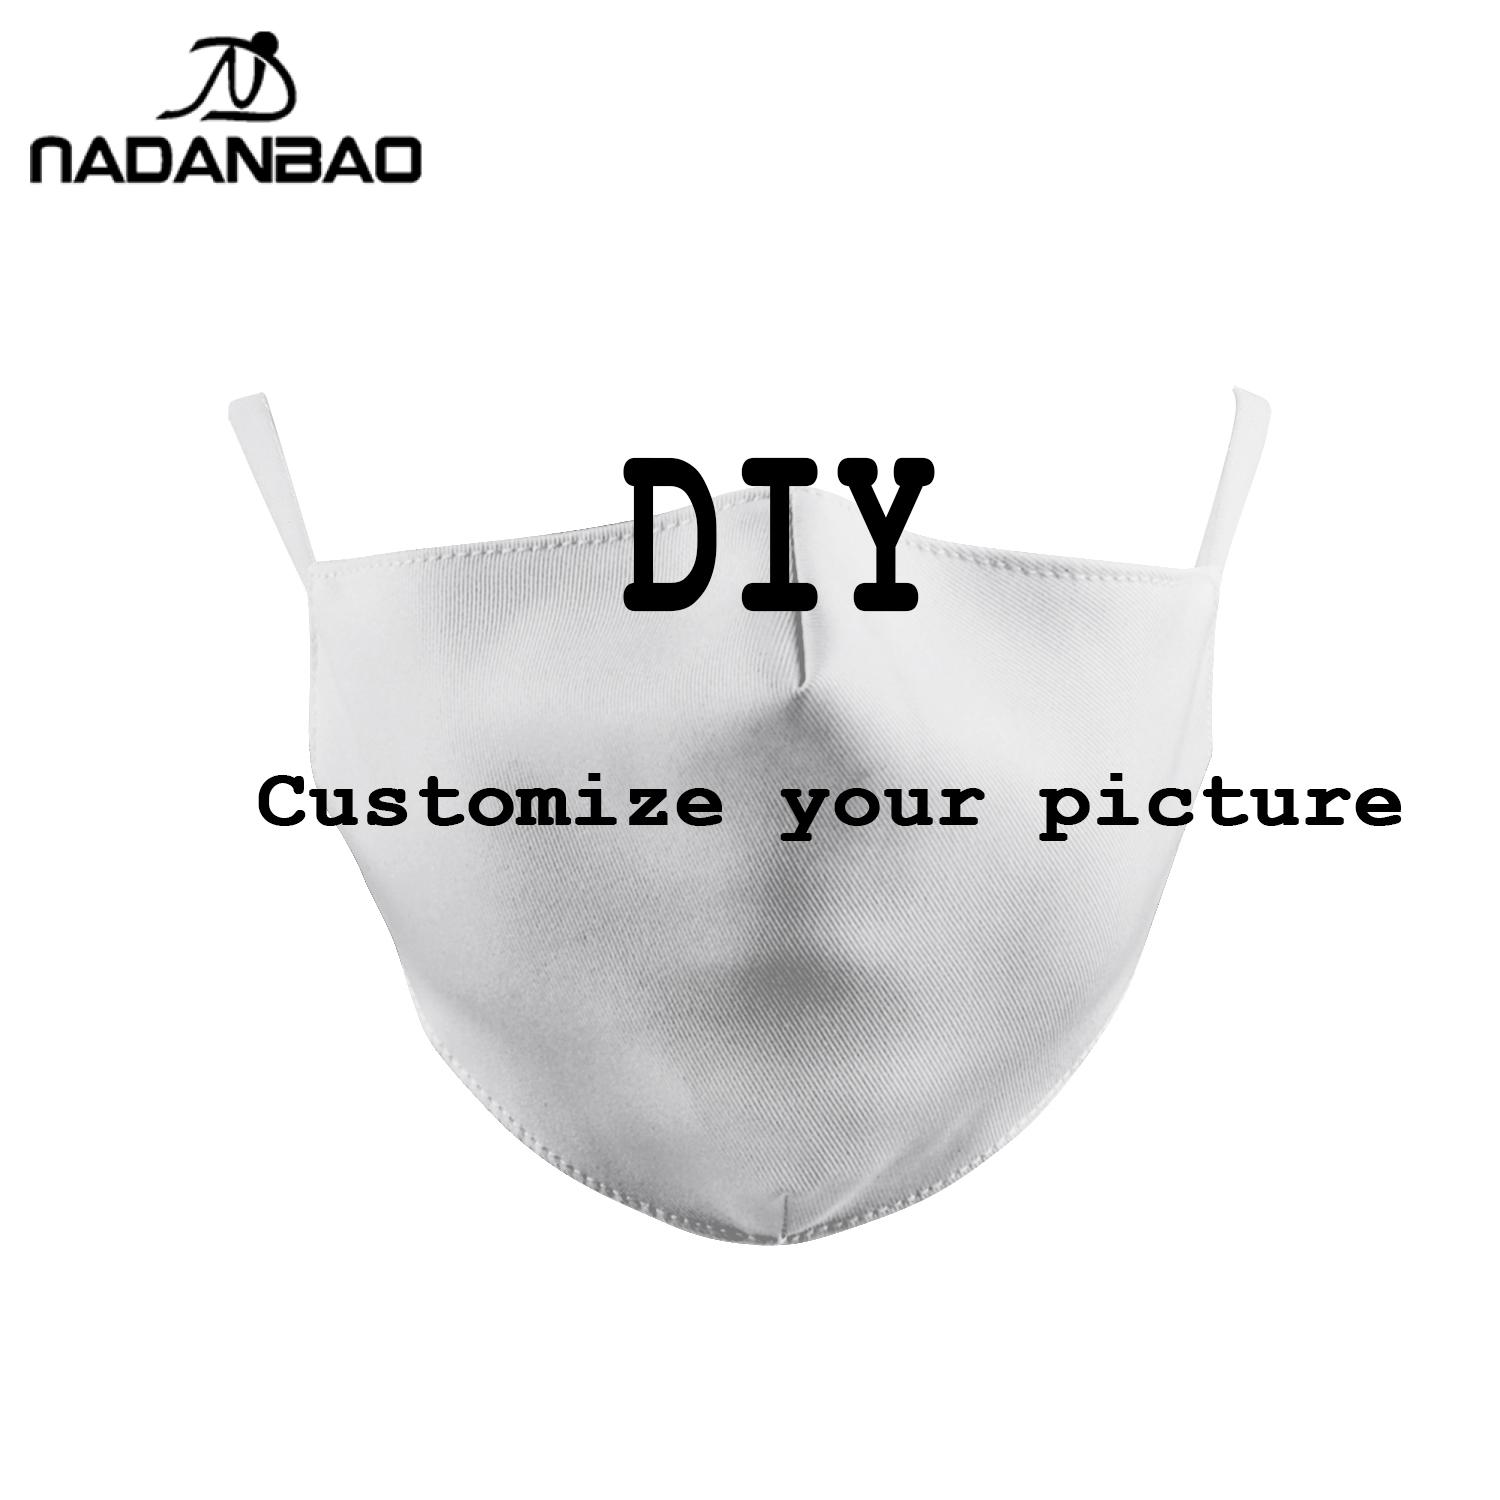 DIY FACE MASK 3D Digital Printing Mouth Cover Customize Dust-proof Kid's Adult Mask